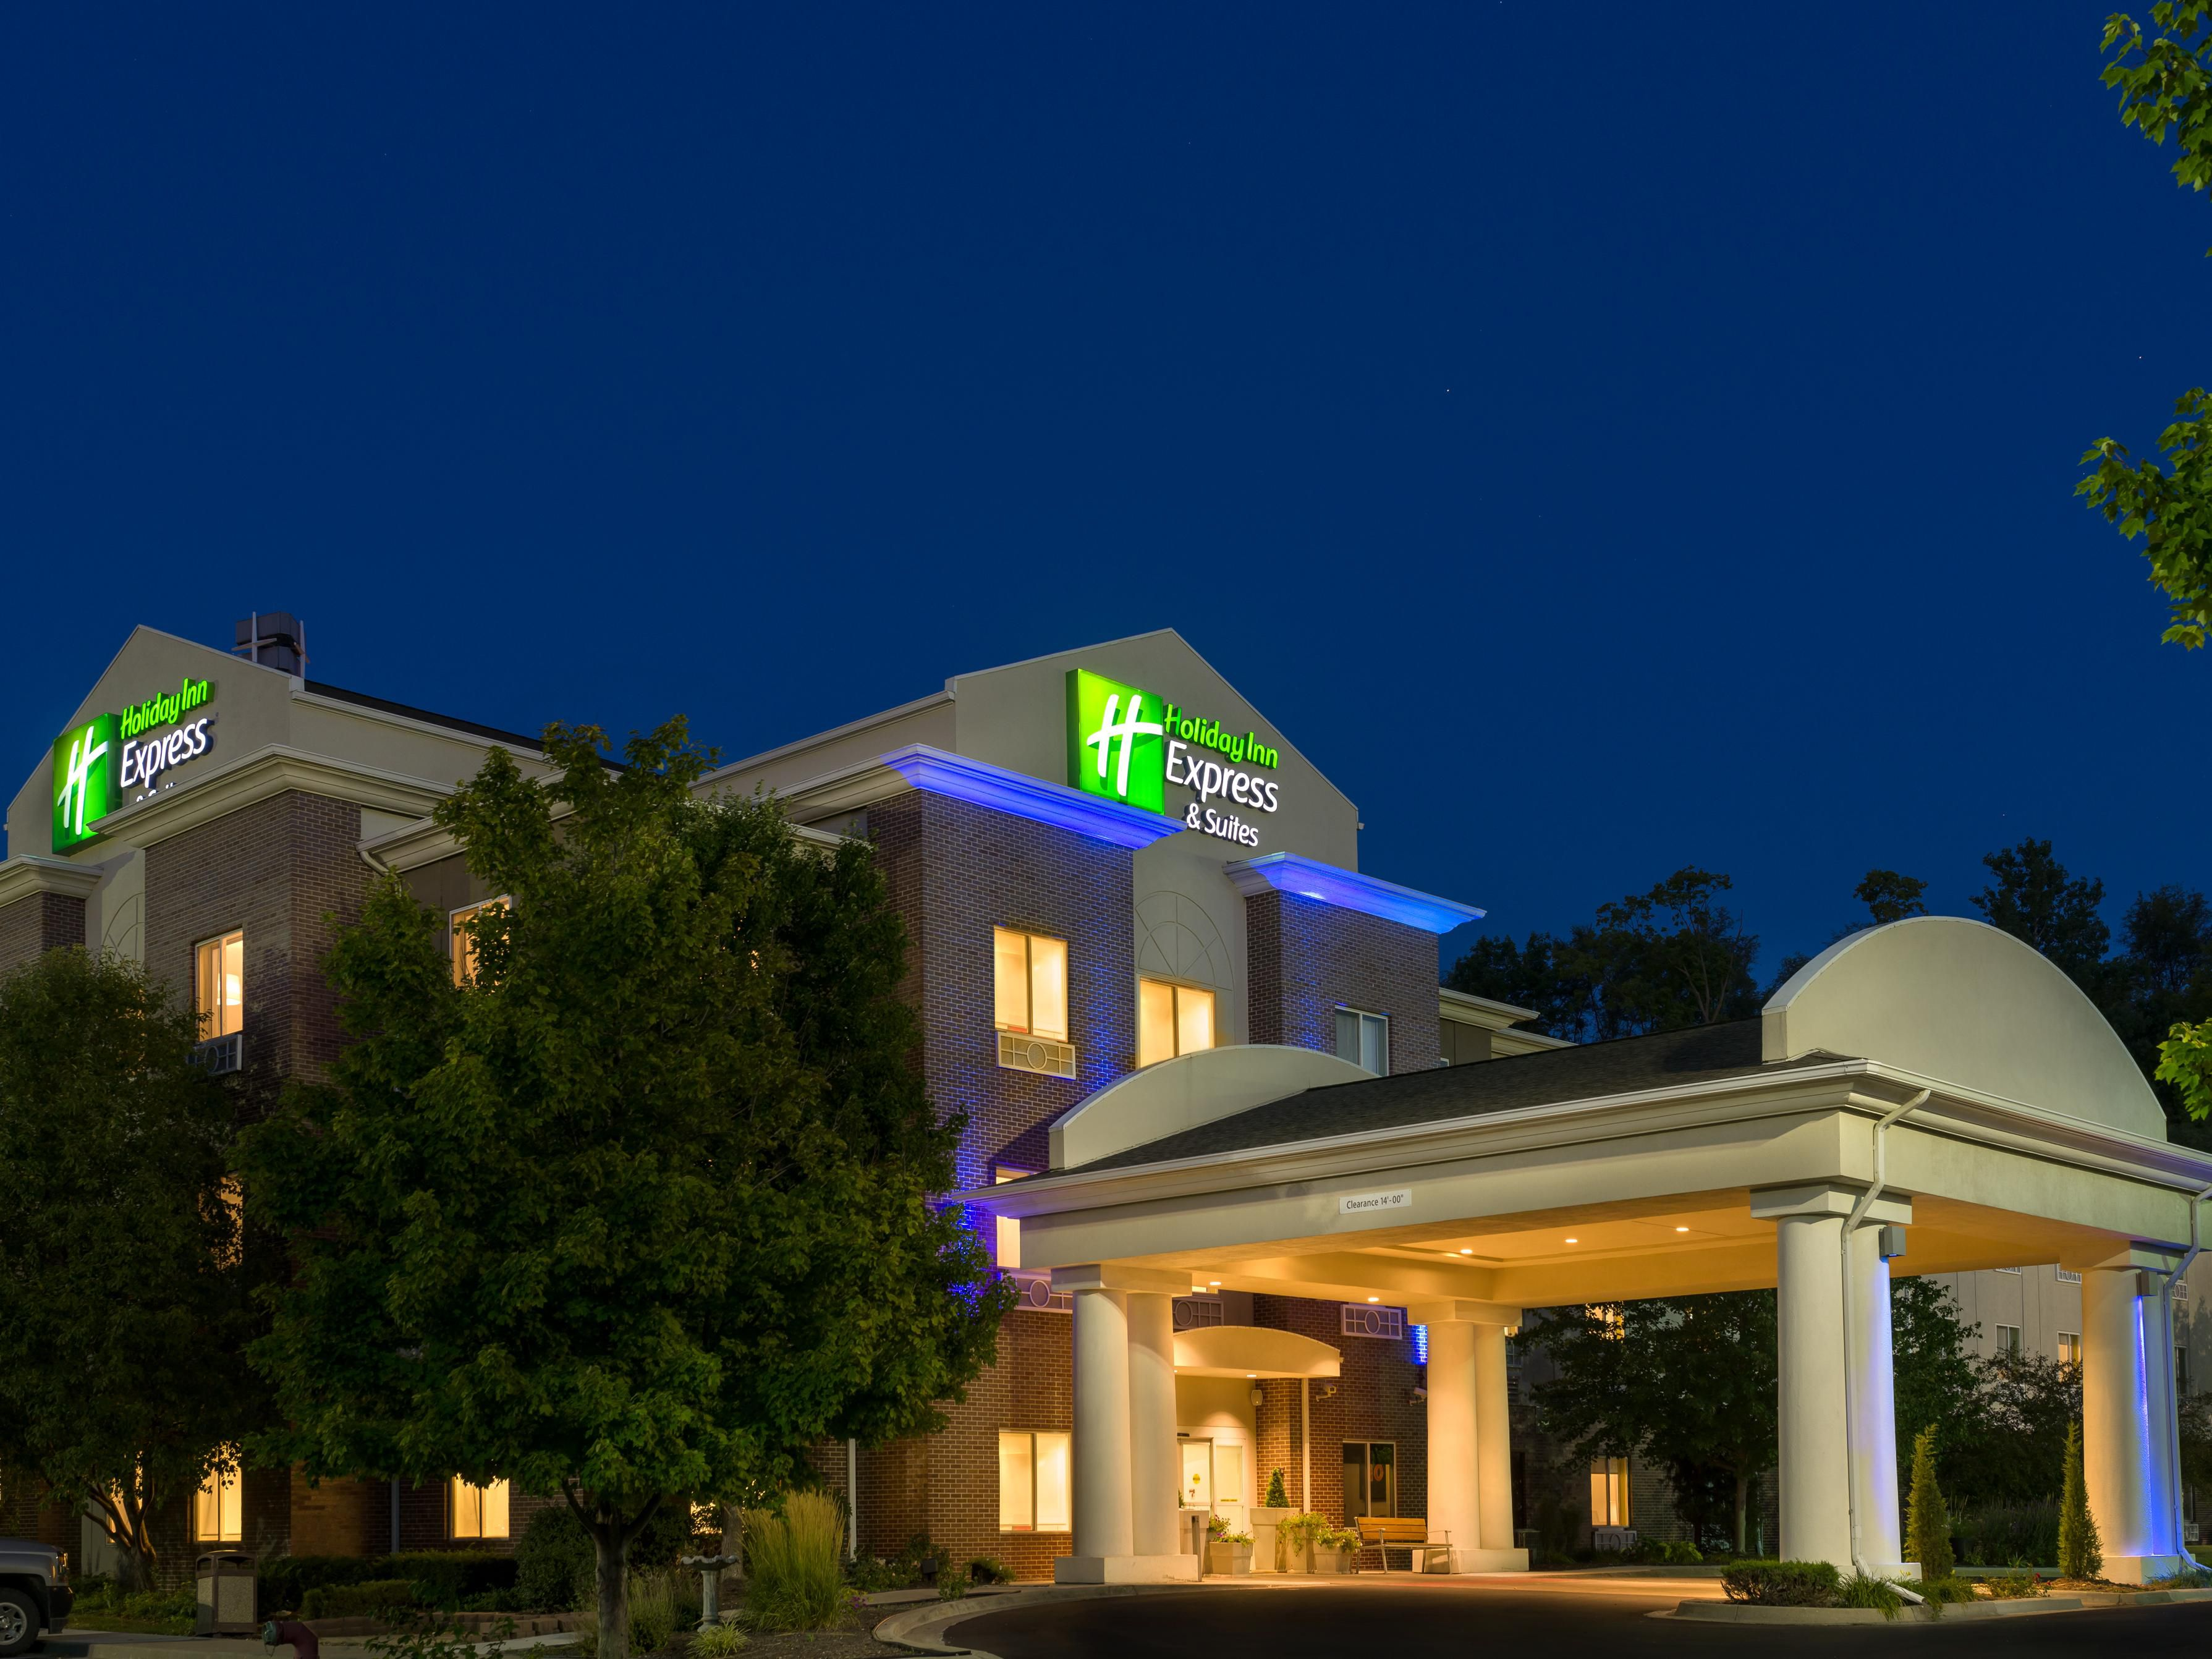 Holiday Inn Express Suites Independence Kansas City Hotel By Ihg